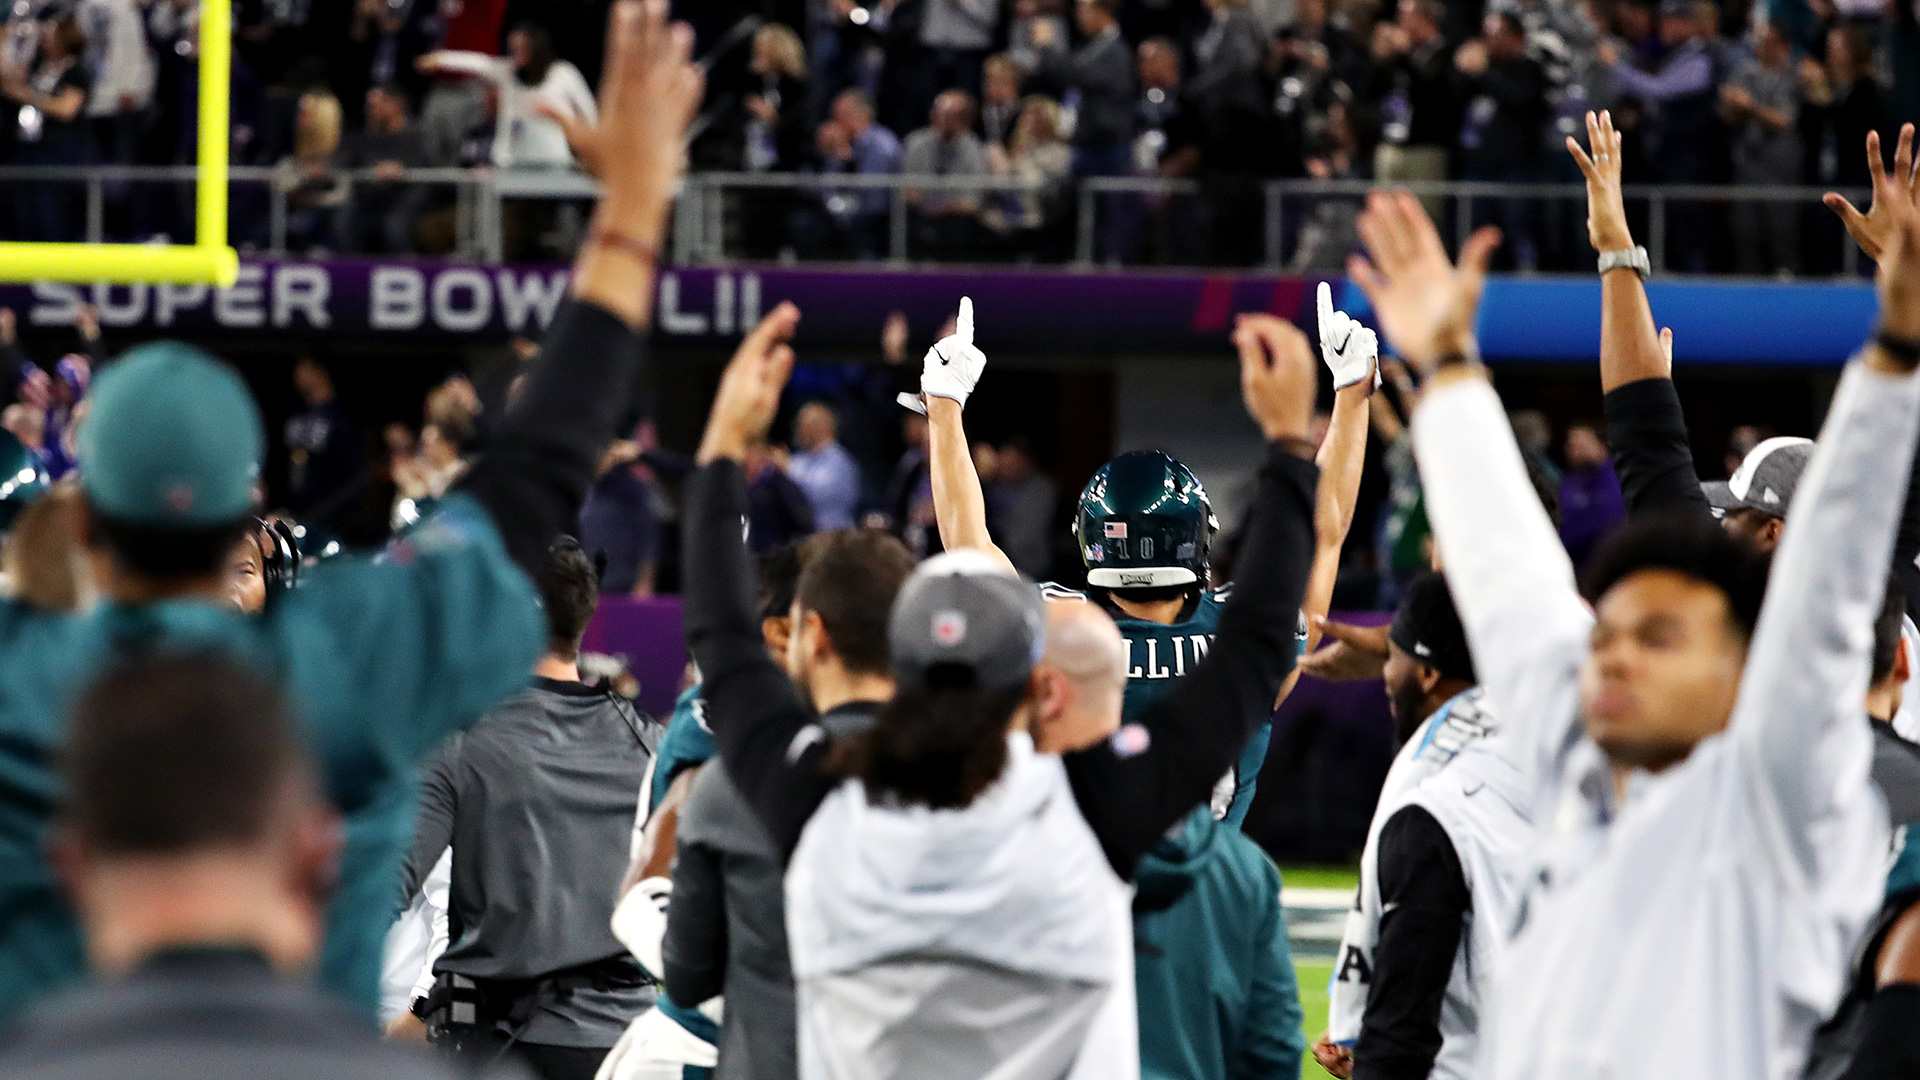 The Philadelphia Eagles celebrate on the sideline.